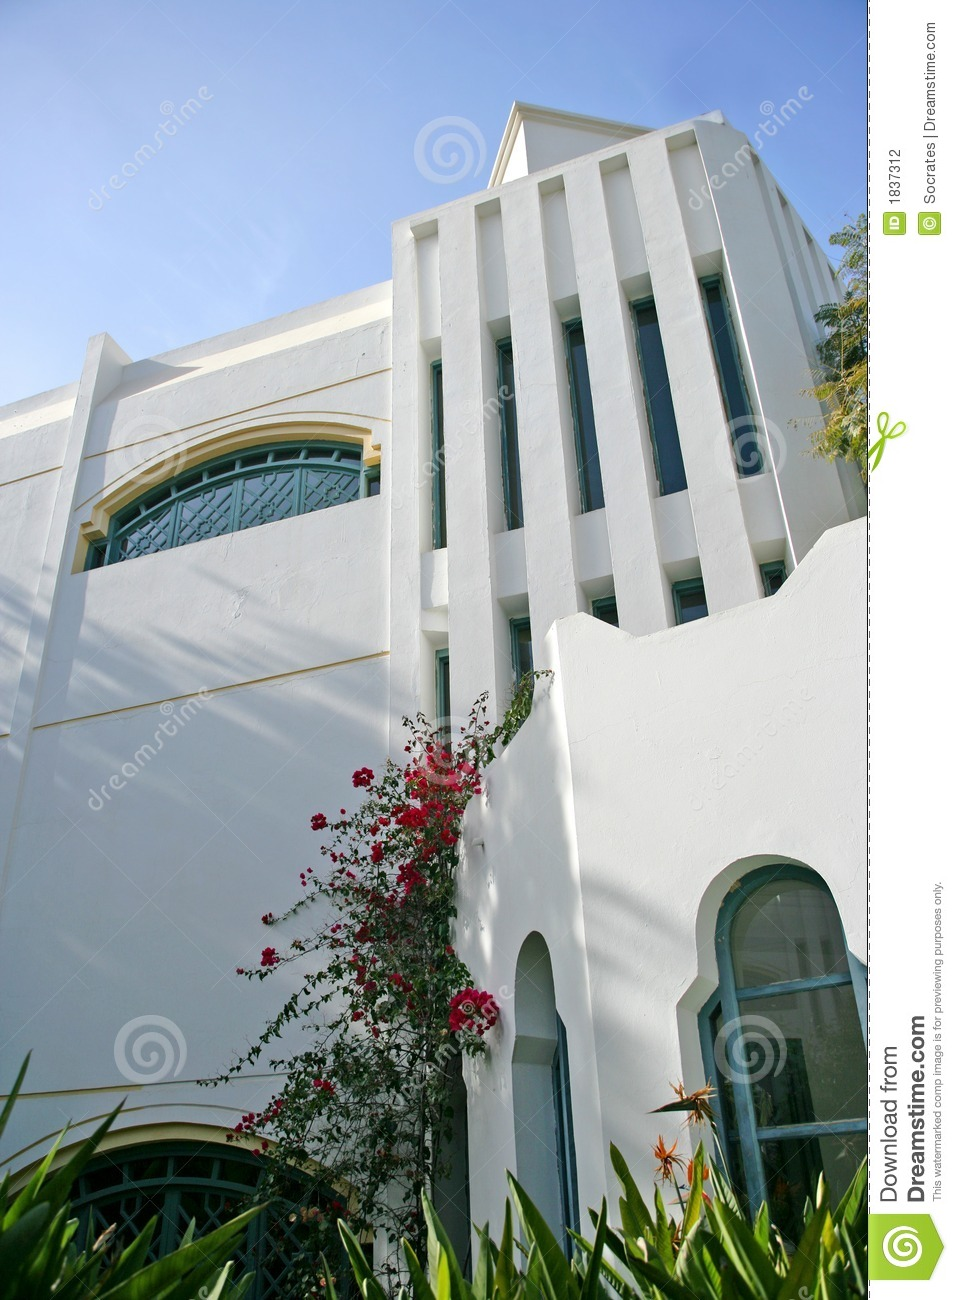 Modern arab architecture stock photography image 1837312 for Modern arabic house architecture